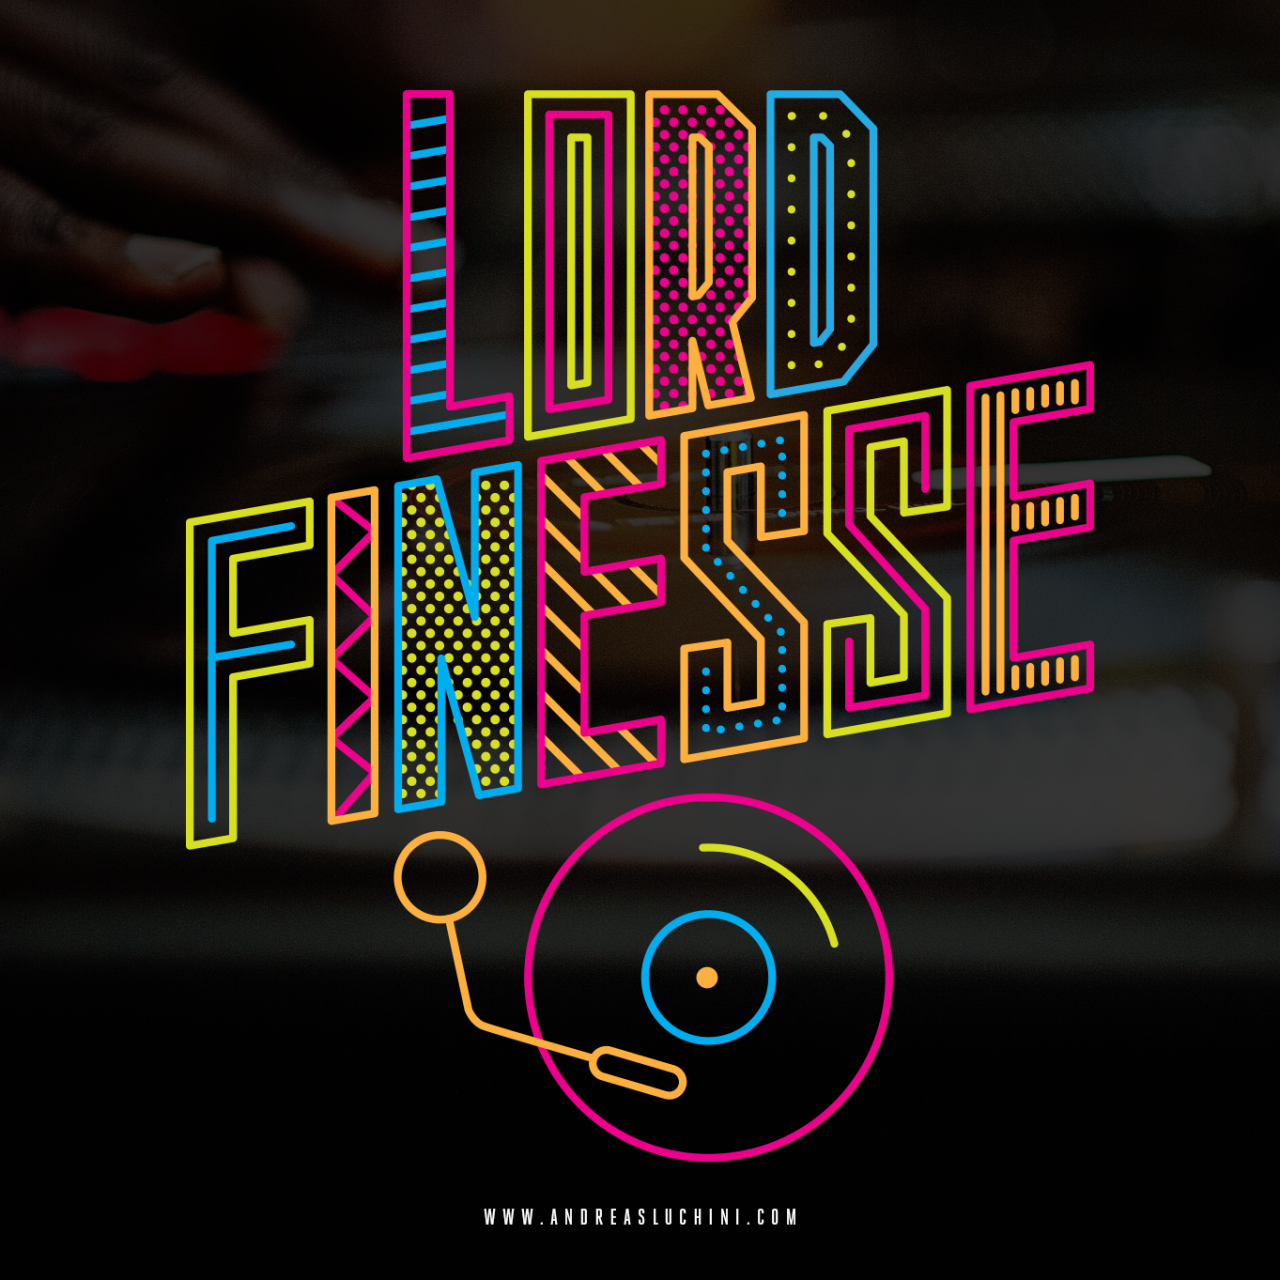 """Lord Finesse"" by Andreas Luchini www.andreasluchini.com"